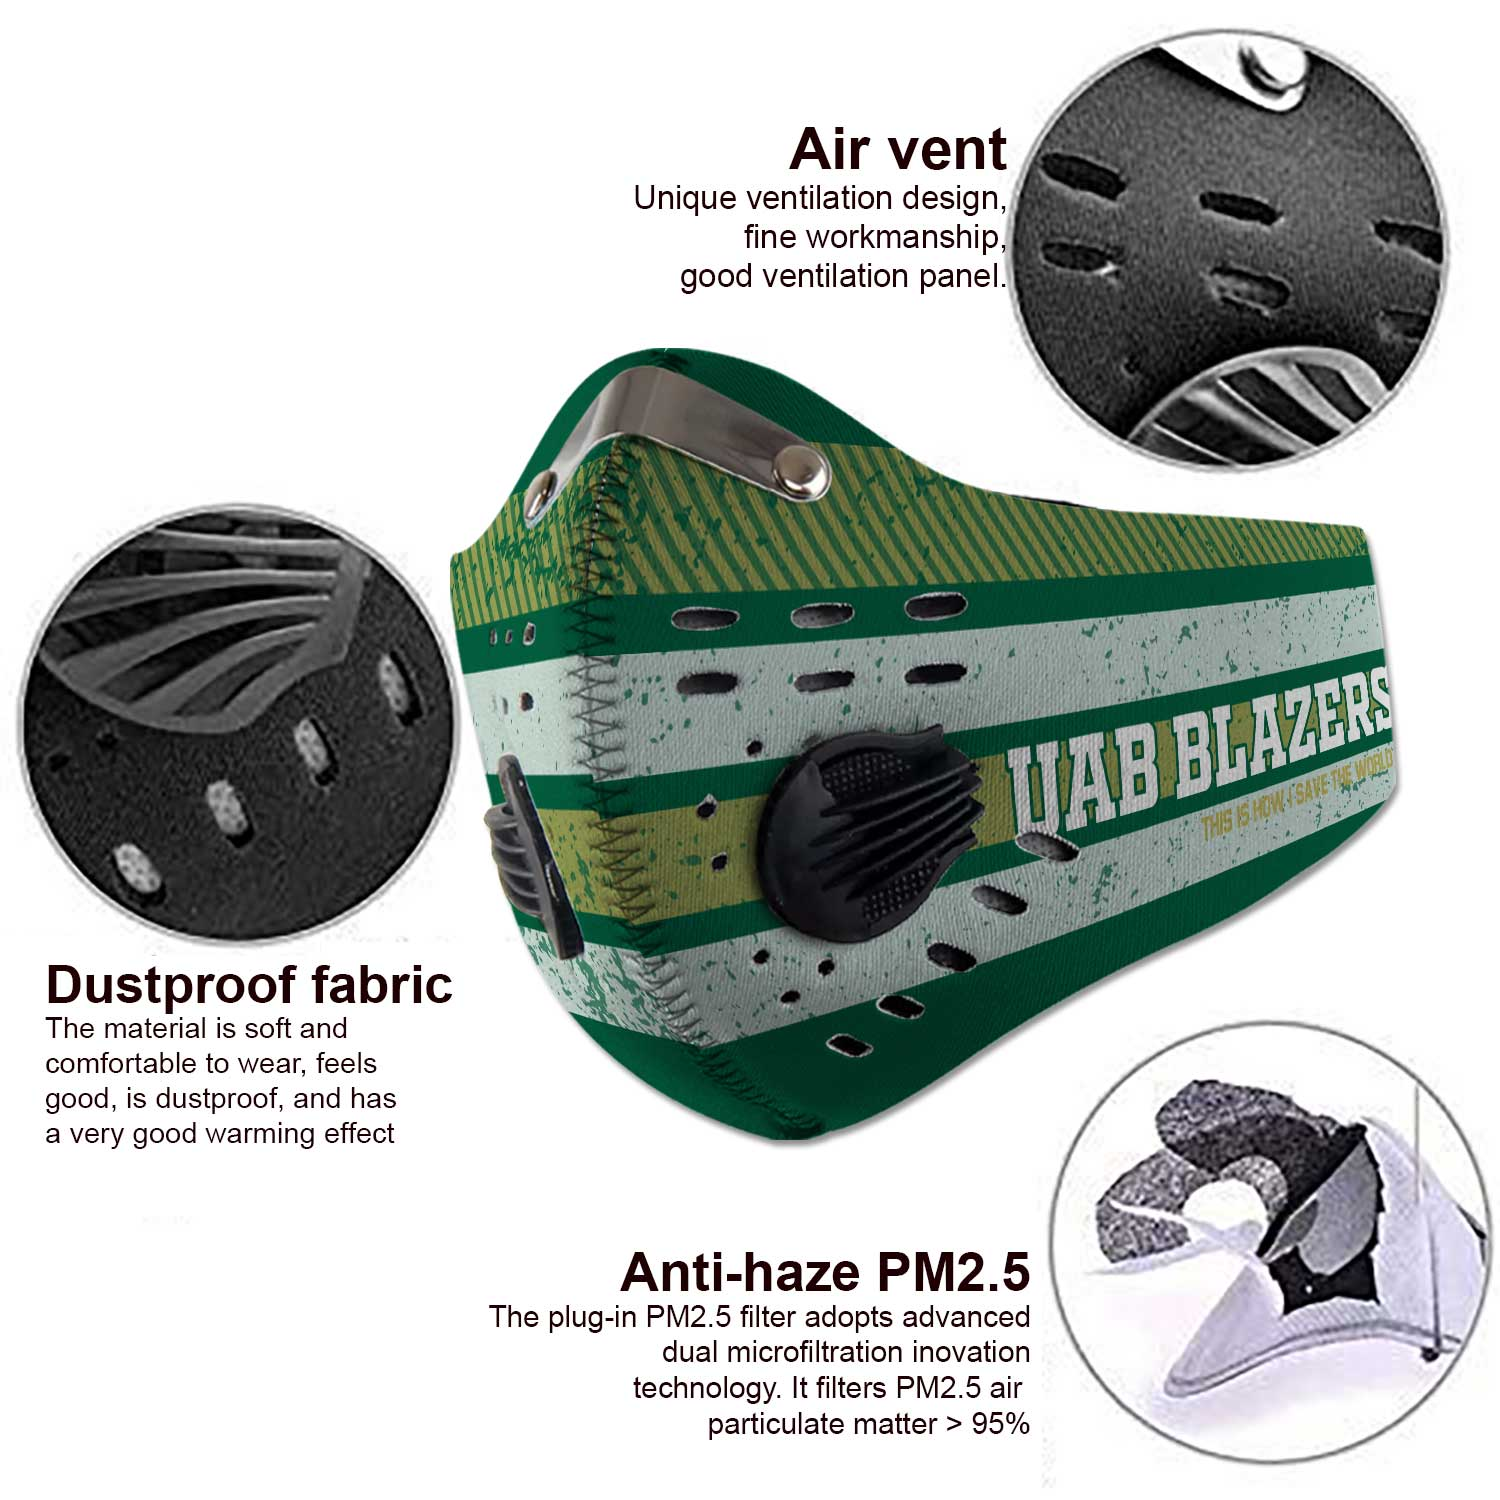 Uab blazers this is how i save the world carbon filter face mask 3